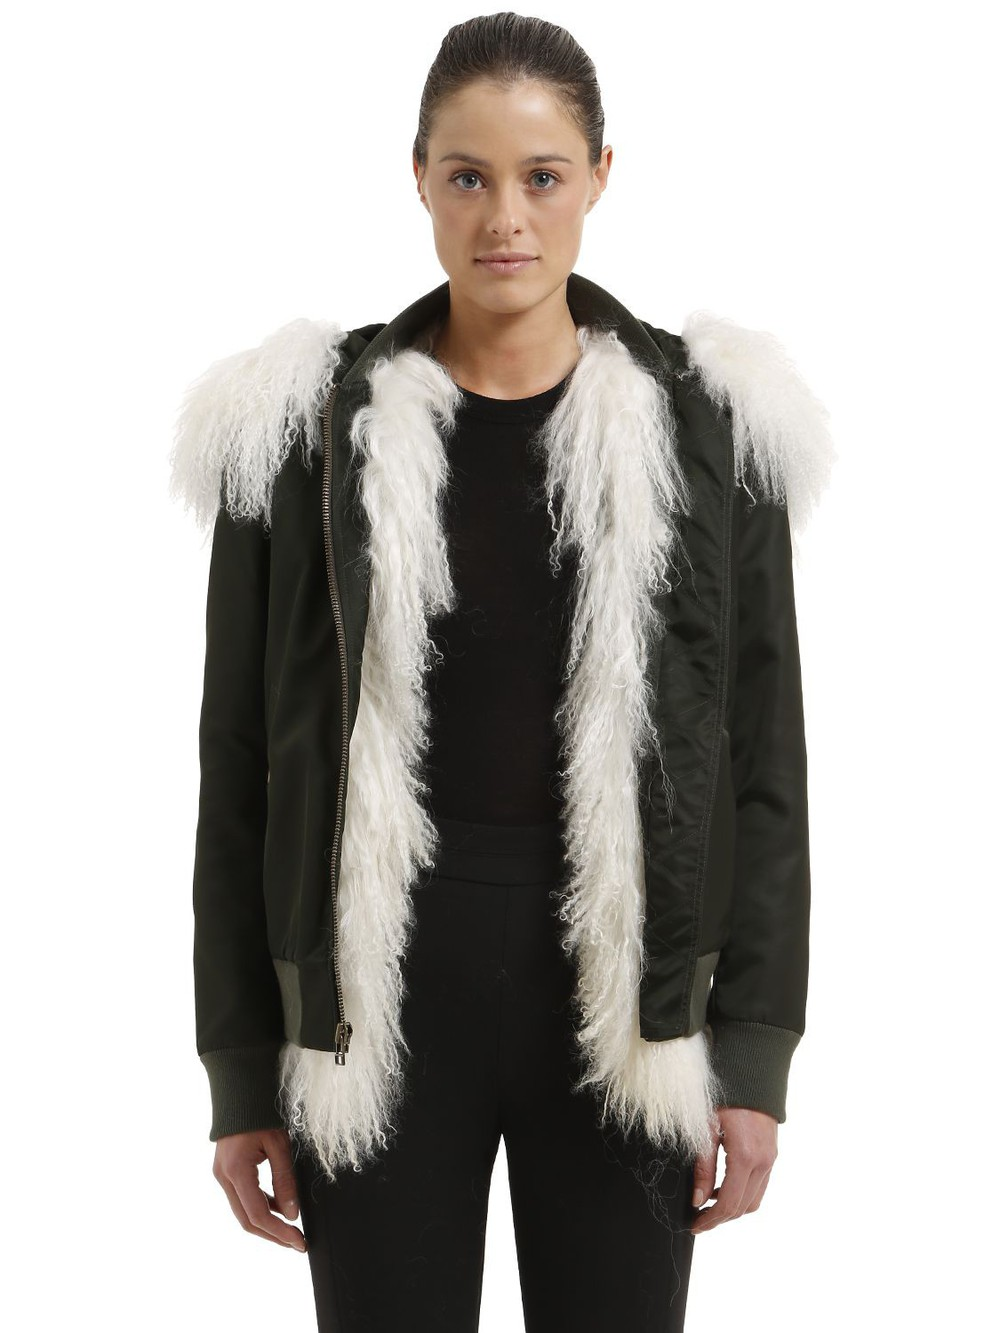 MR & MRS ITALY Slim Fit Bomber Jacket W/ Fur in green